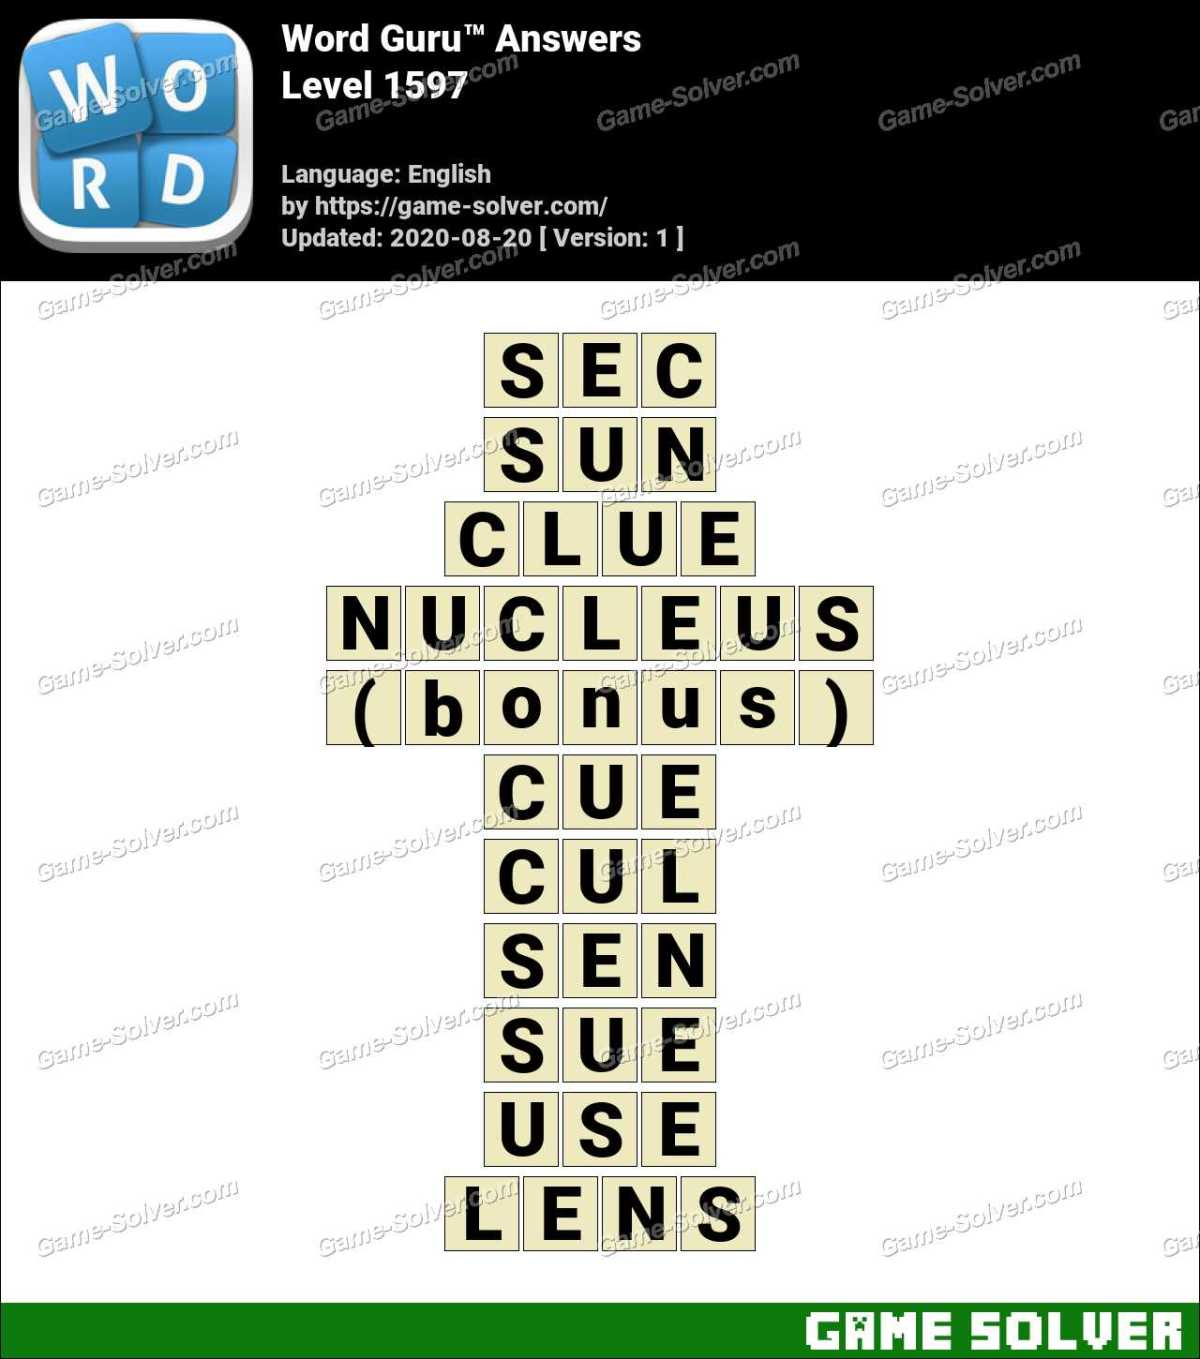 Word Guru Level 1597 Answers